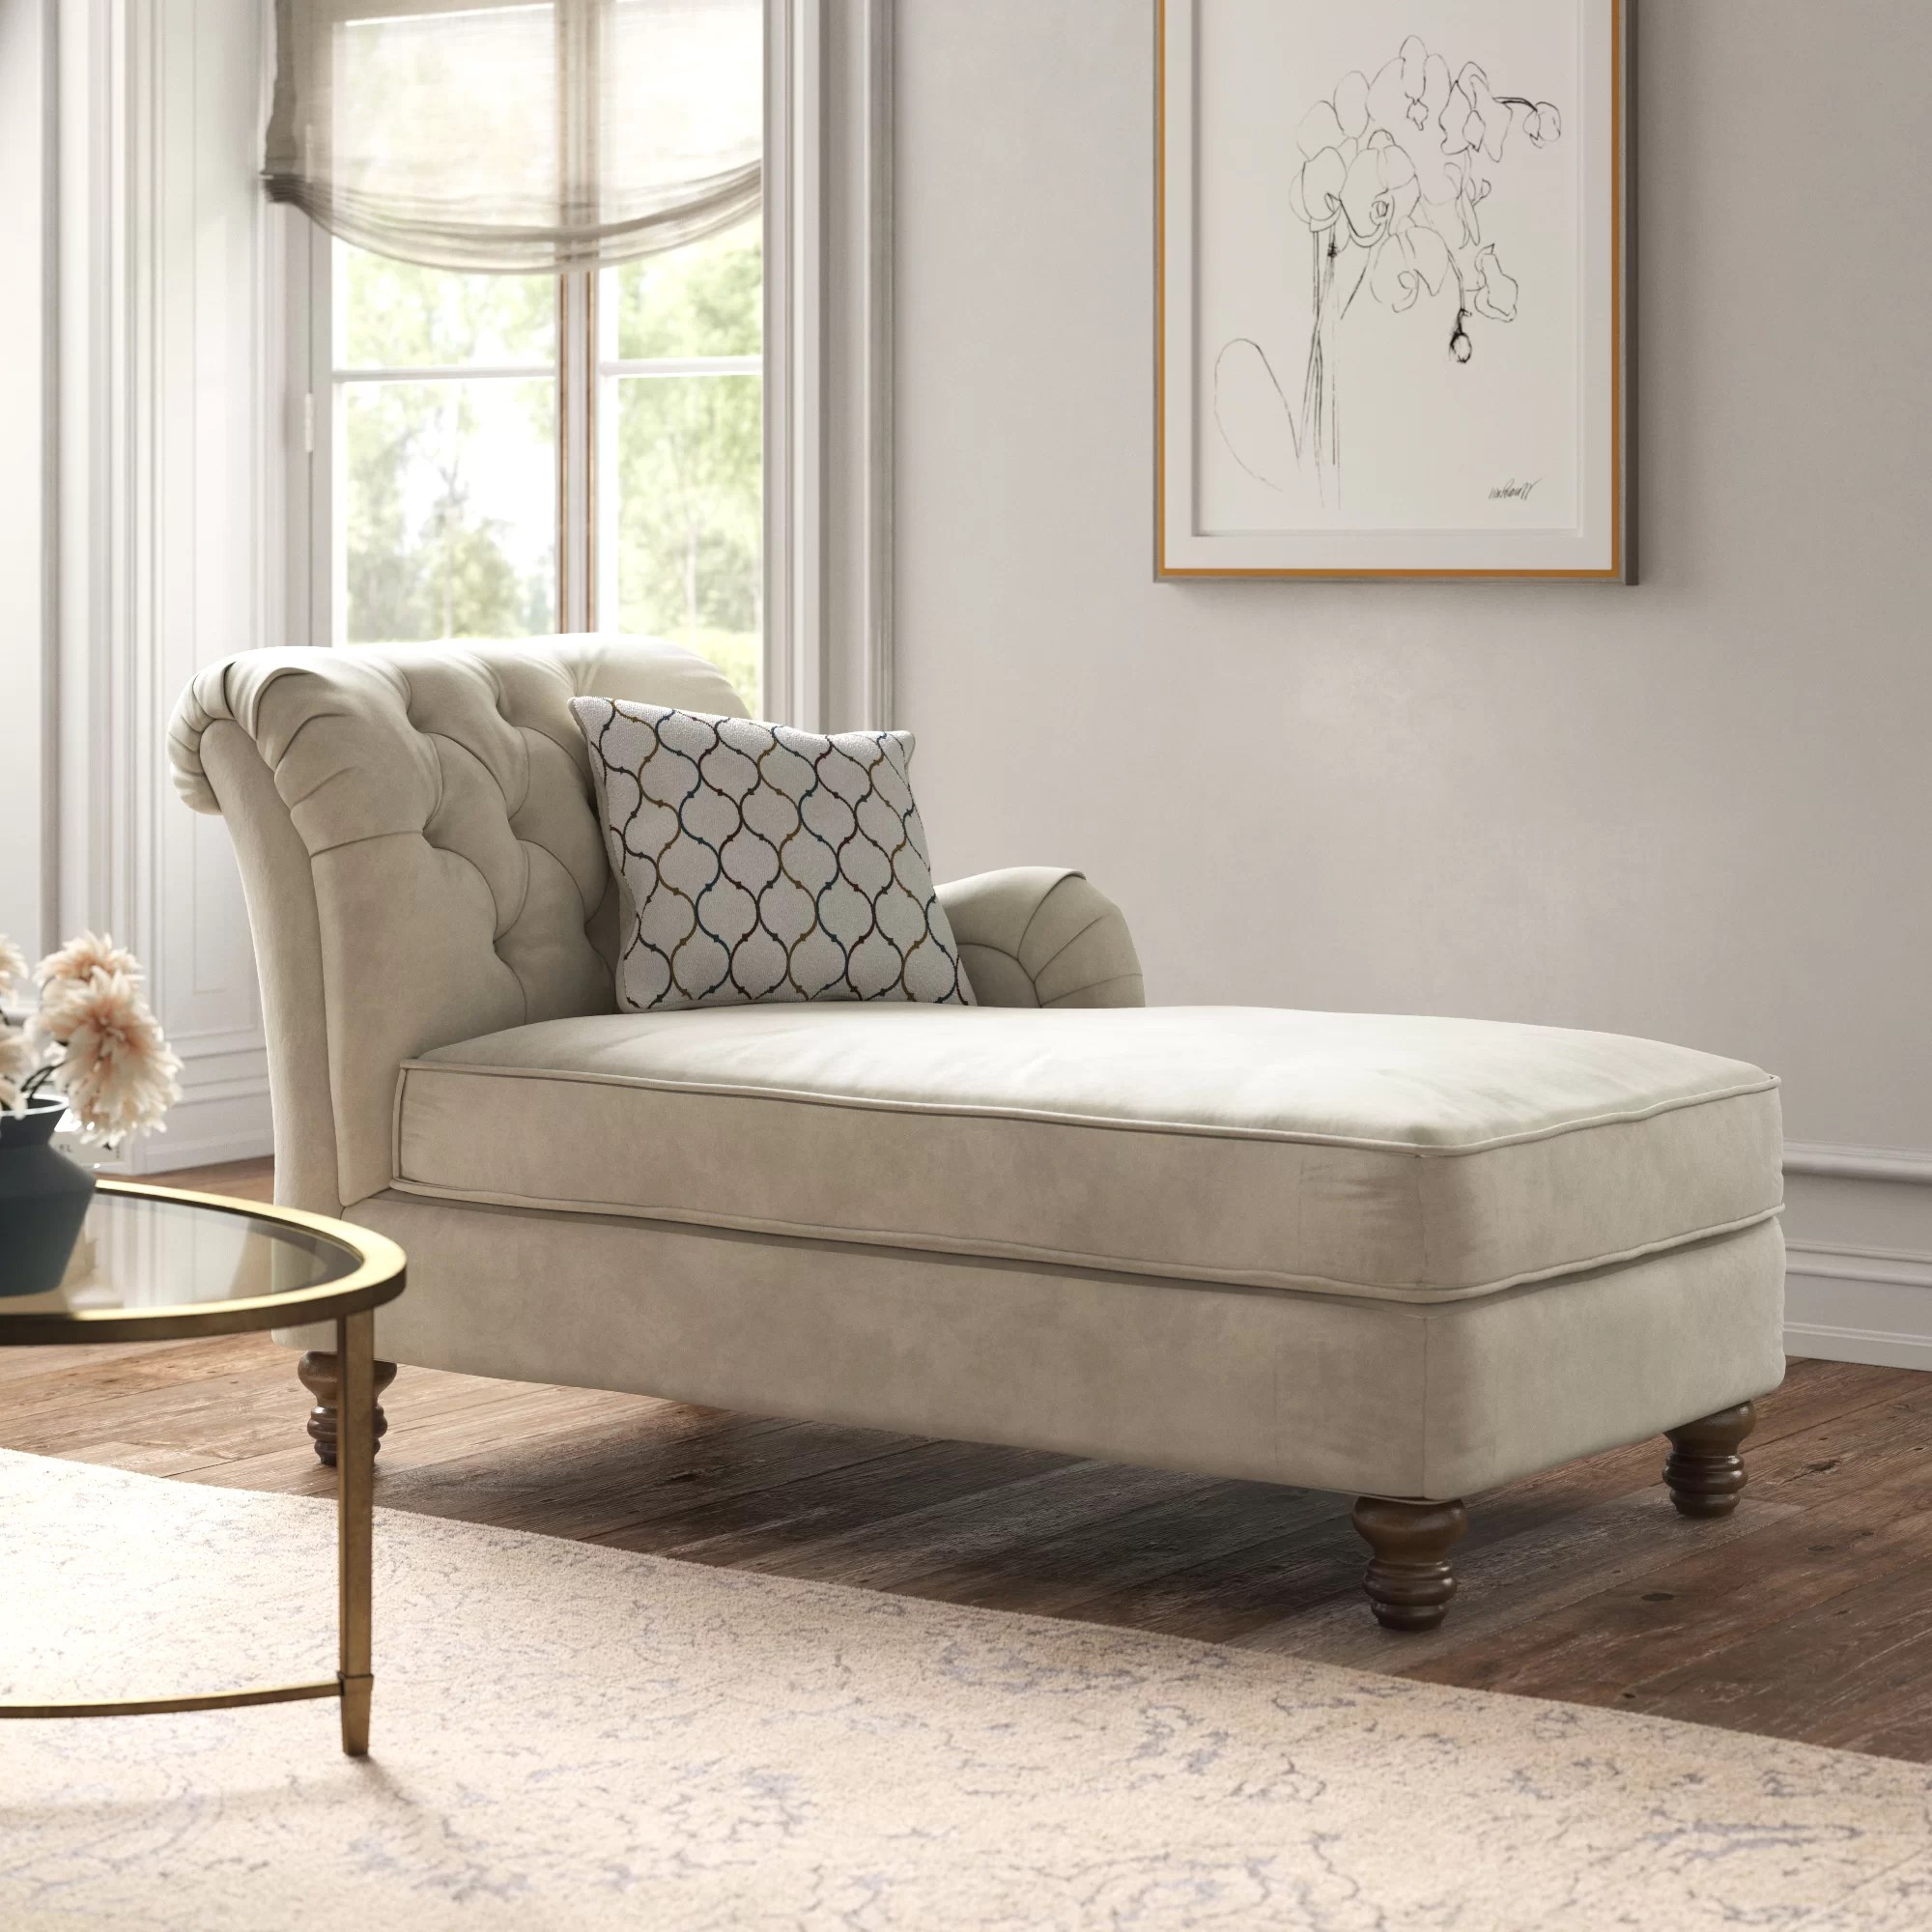 Kelly Clarkson Home Chaise Lounge & Reviews | Wayfair